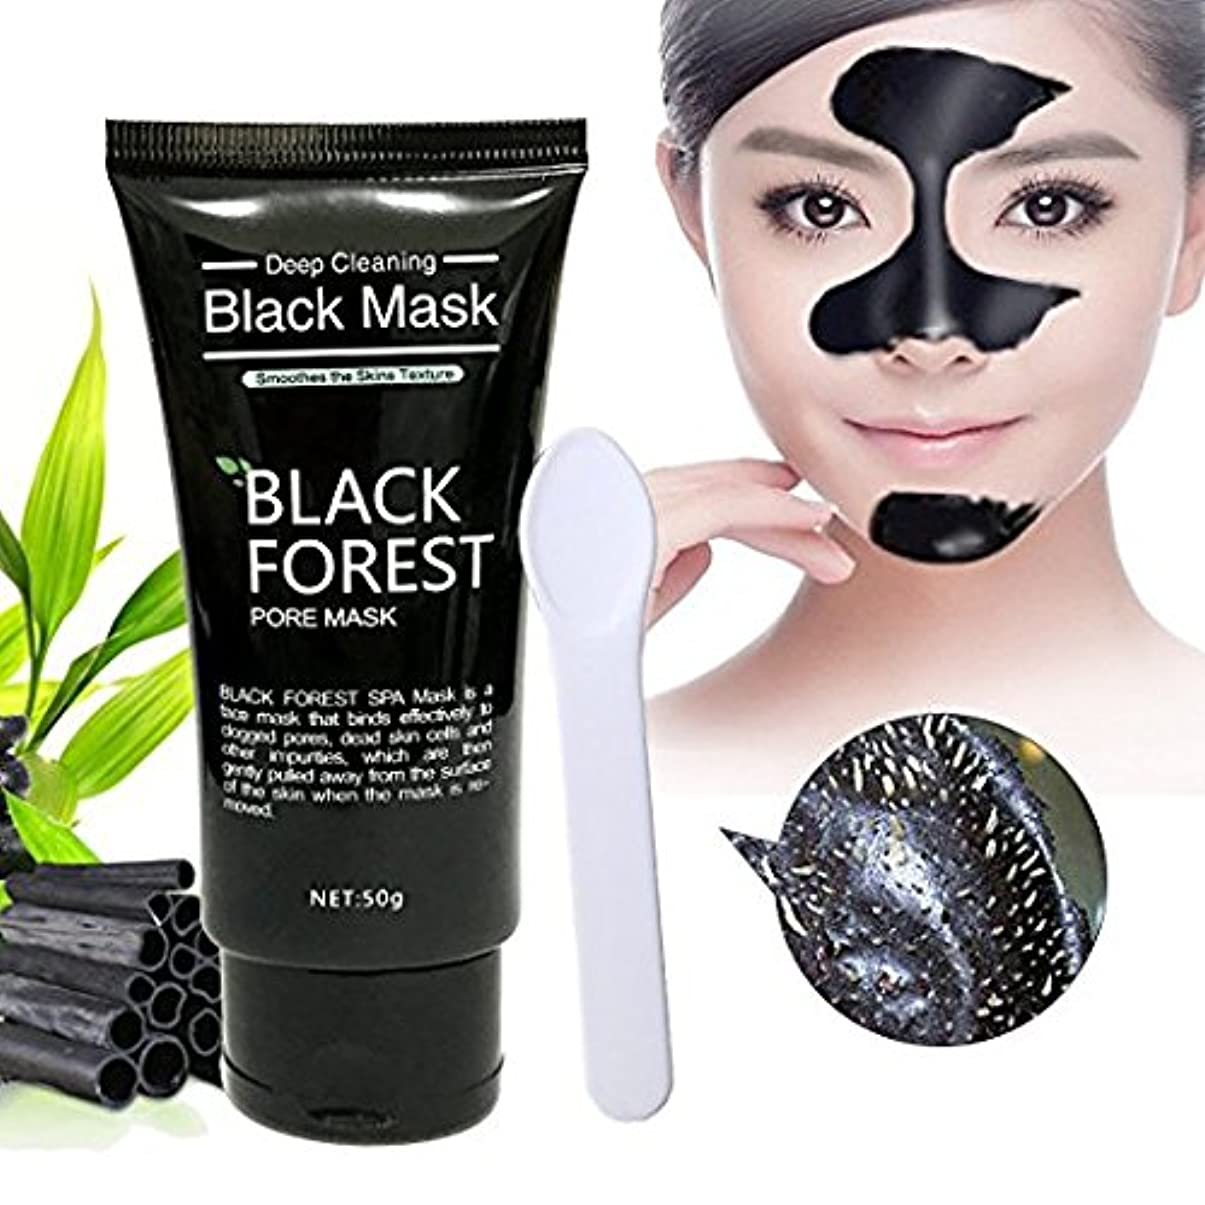 ダーツカテゴリー北極圏Blackhead Remover Mask, Black Forest Spa-Peel Off Black Head Acne Treatments,Face Cleaning Mask+Spoon